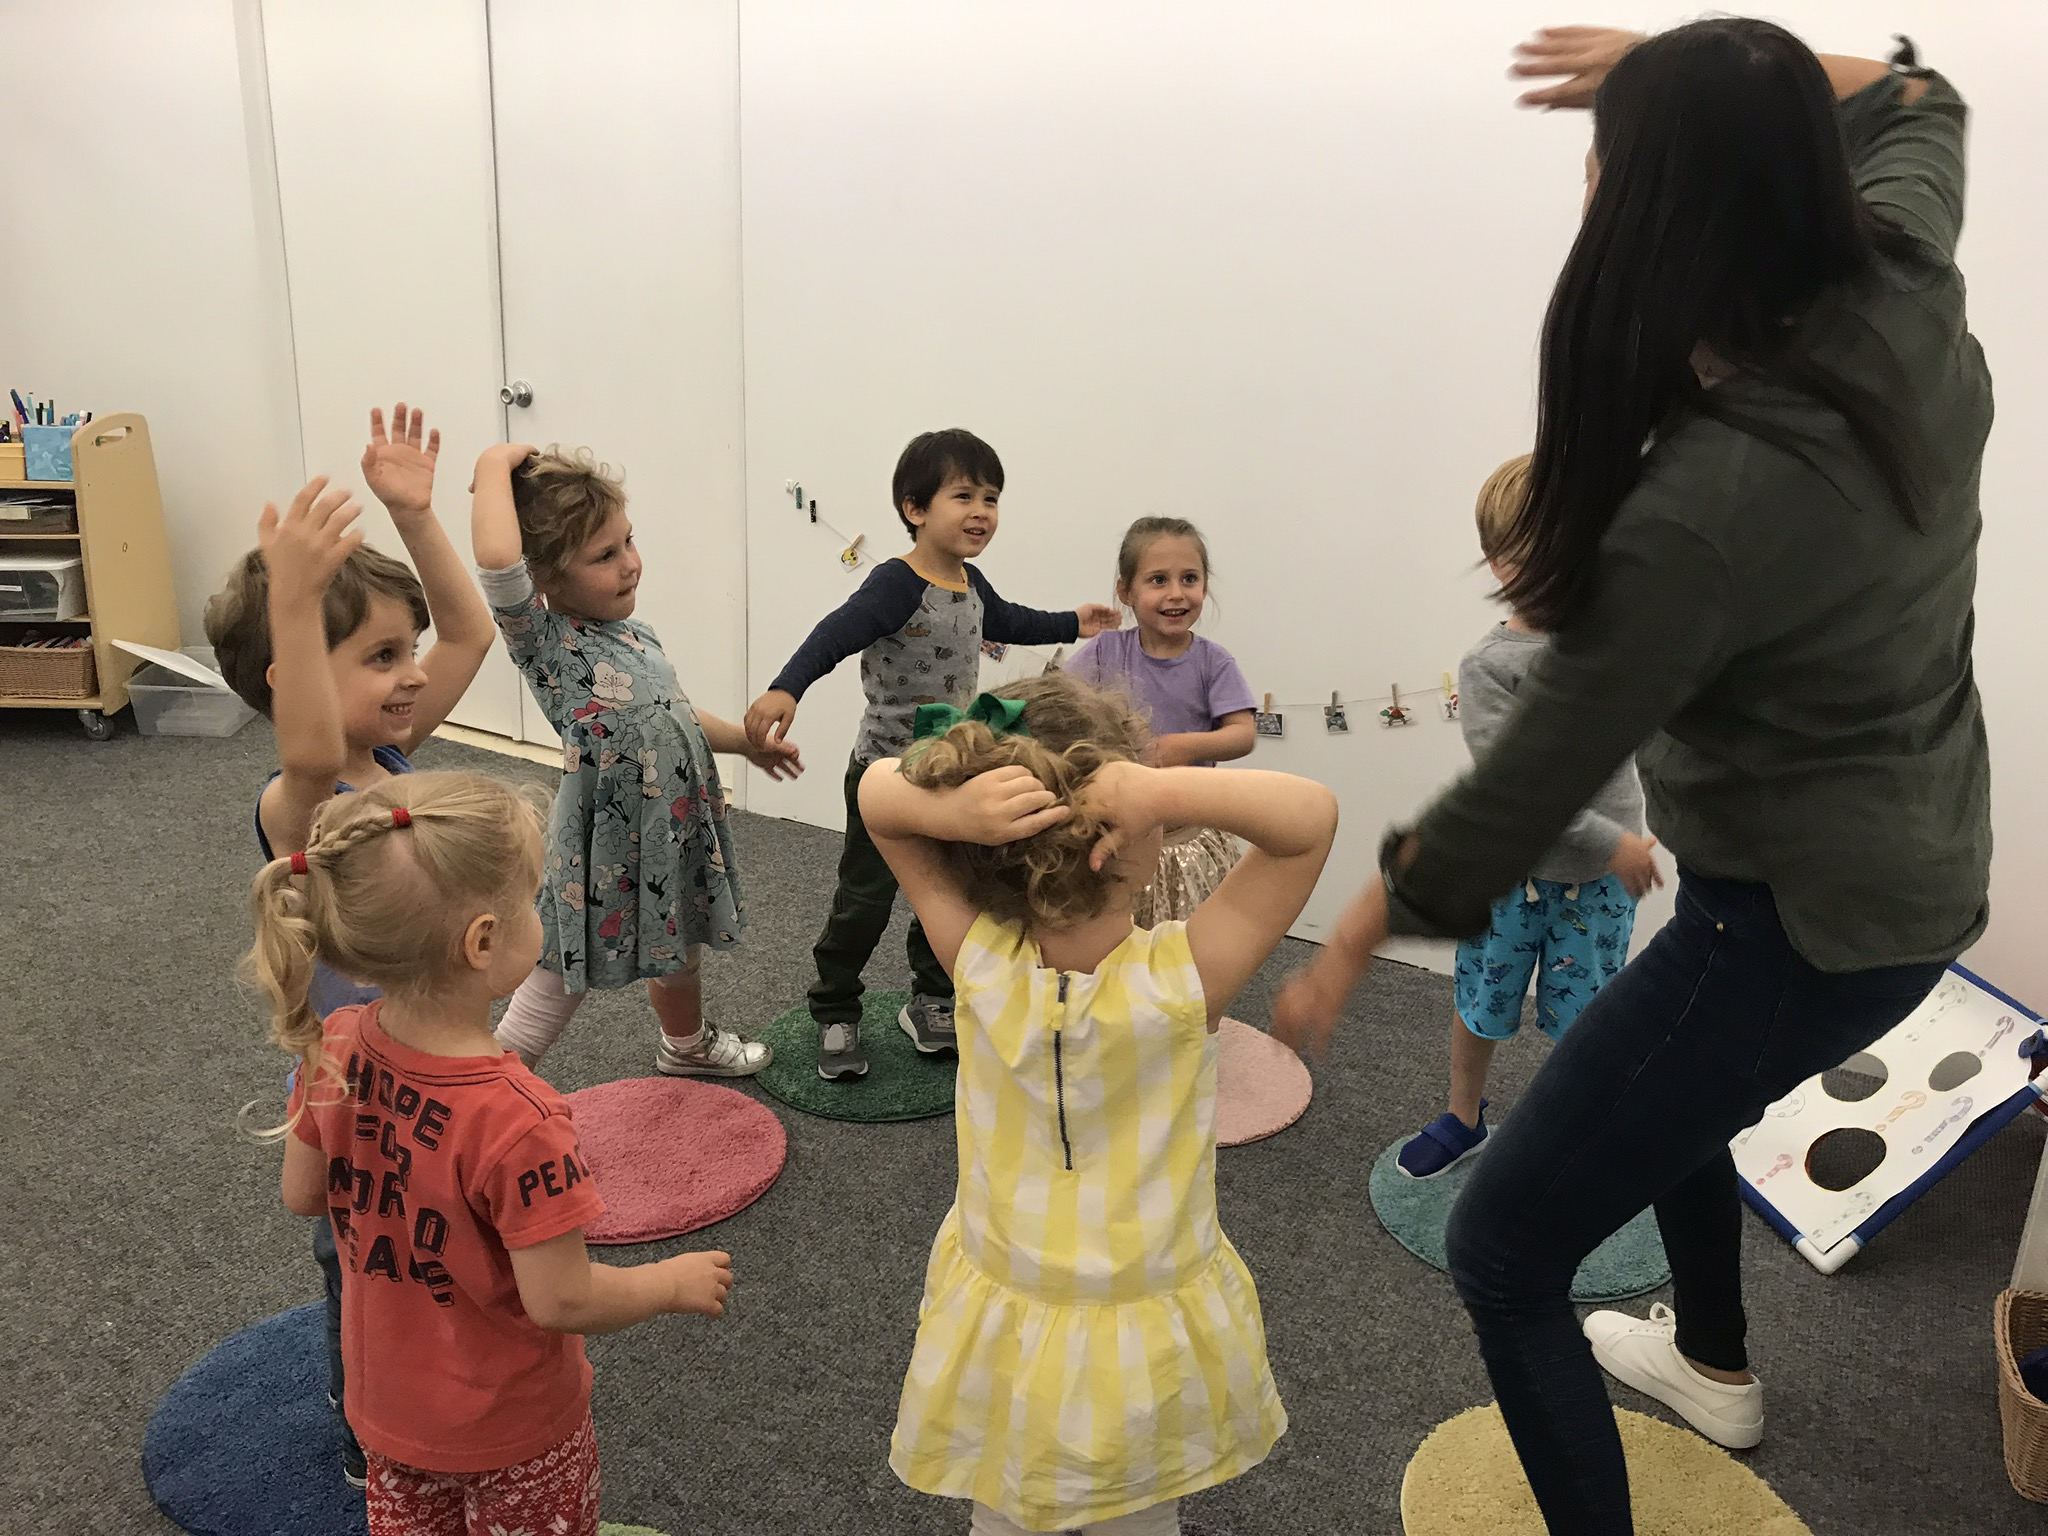 Books Before Screens - A joyful pre-literacy workshop where children and teachers bring stories to life through multi-sensory play and uniquely designed educational materials.